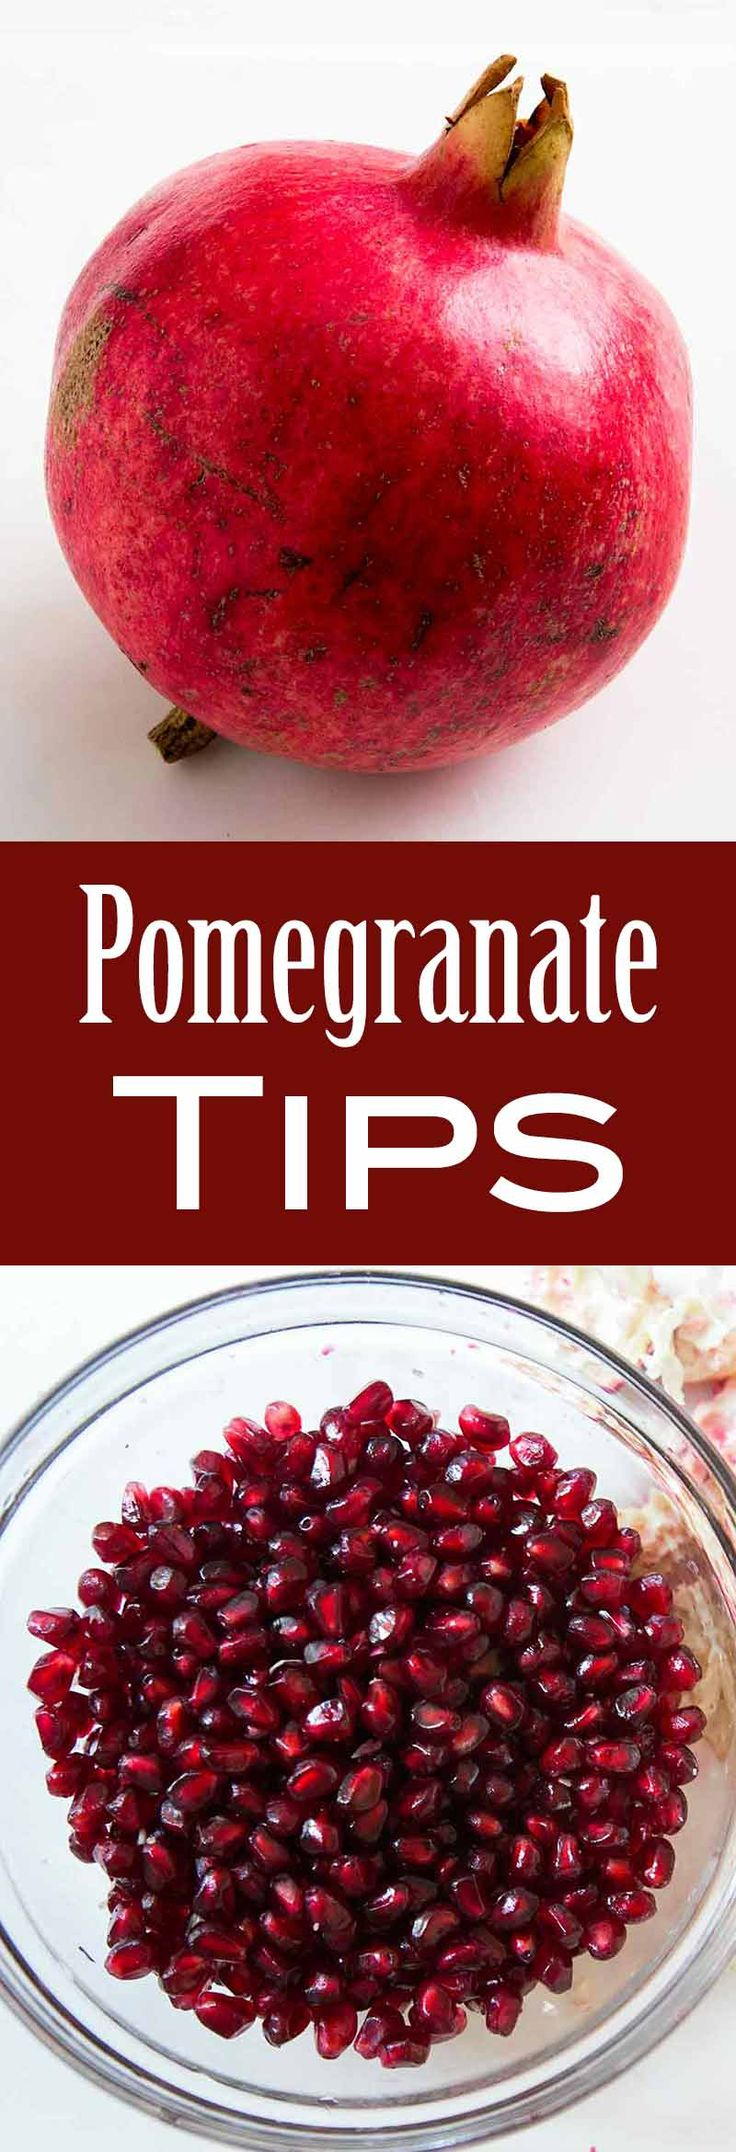 All about pomegranates, how to choose them, store them, and what to cook with them! #pomegranates #pomegranateseeds